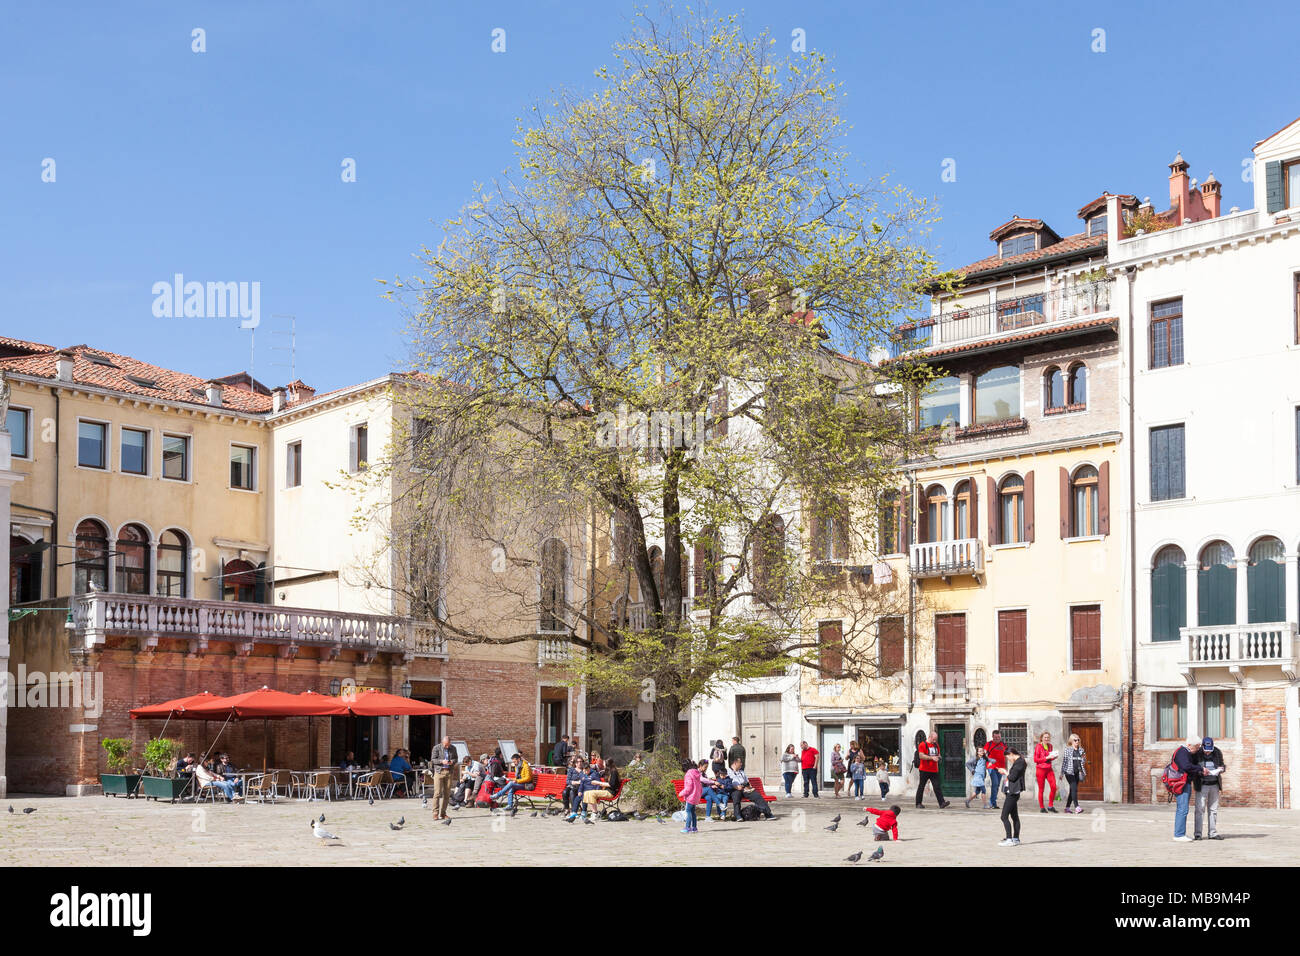 Campo San Polo, San Polo, Venice, Veneto, Italy in spring with locals and their kids enjoying the sunshine and relaxing on benches under trees - Stock Image